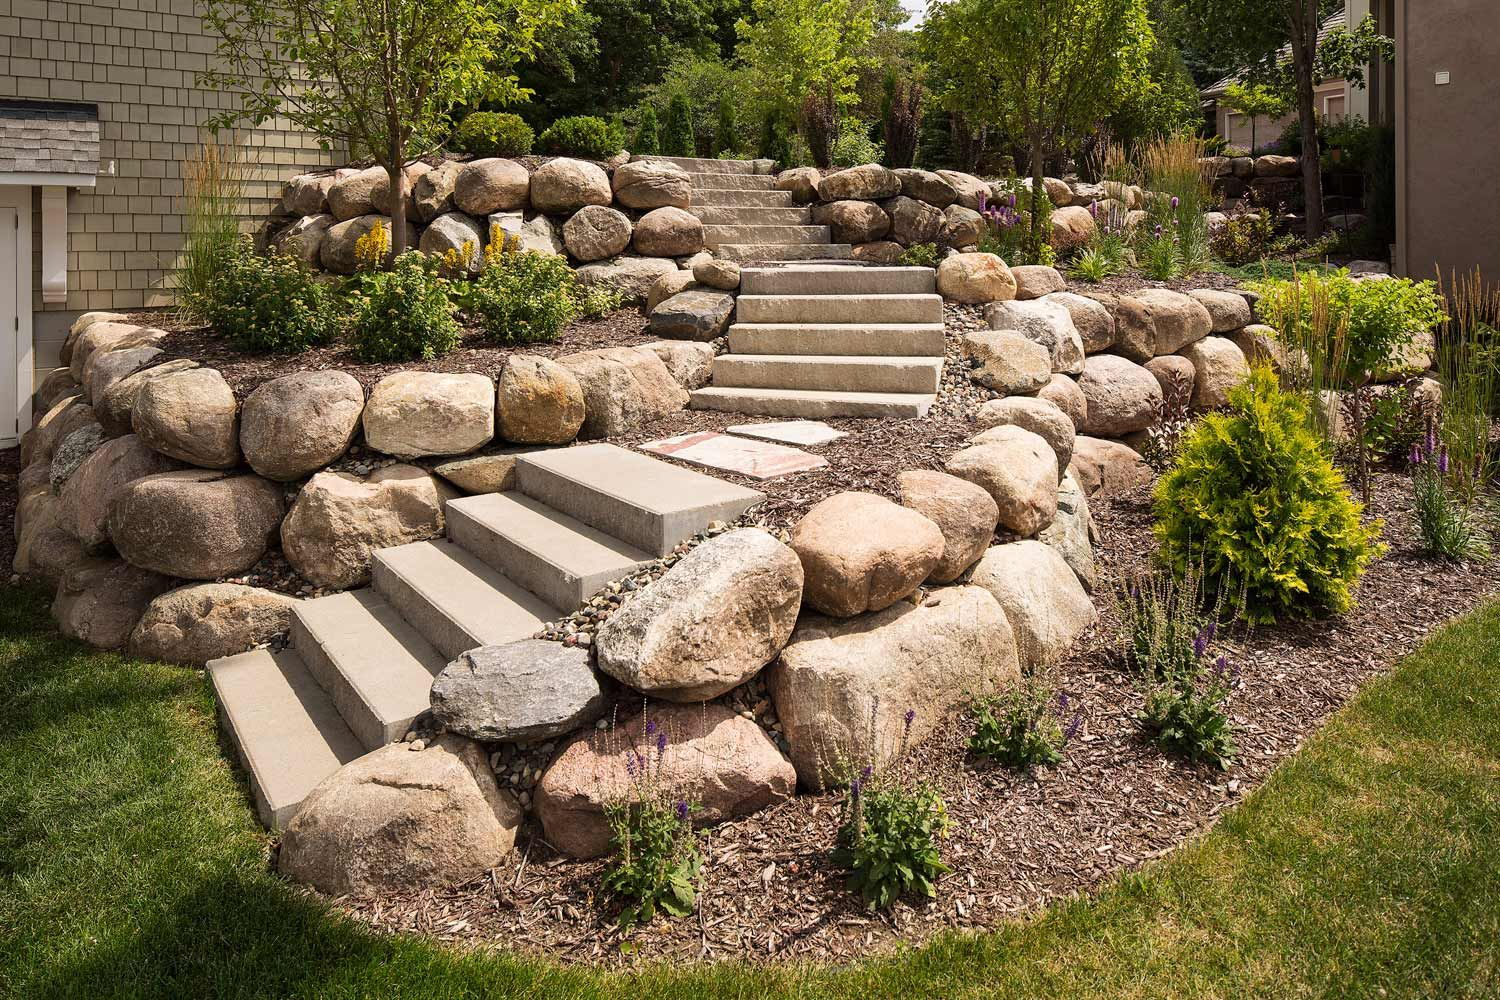 Stone Brick And Concrete Landscaping Steps Stairs Southview Design Minneapolis In 2020 Landscaping With Boulders Small Natural Garden Ideas Boulder Retaining Wall